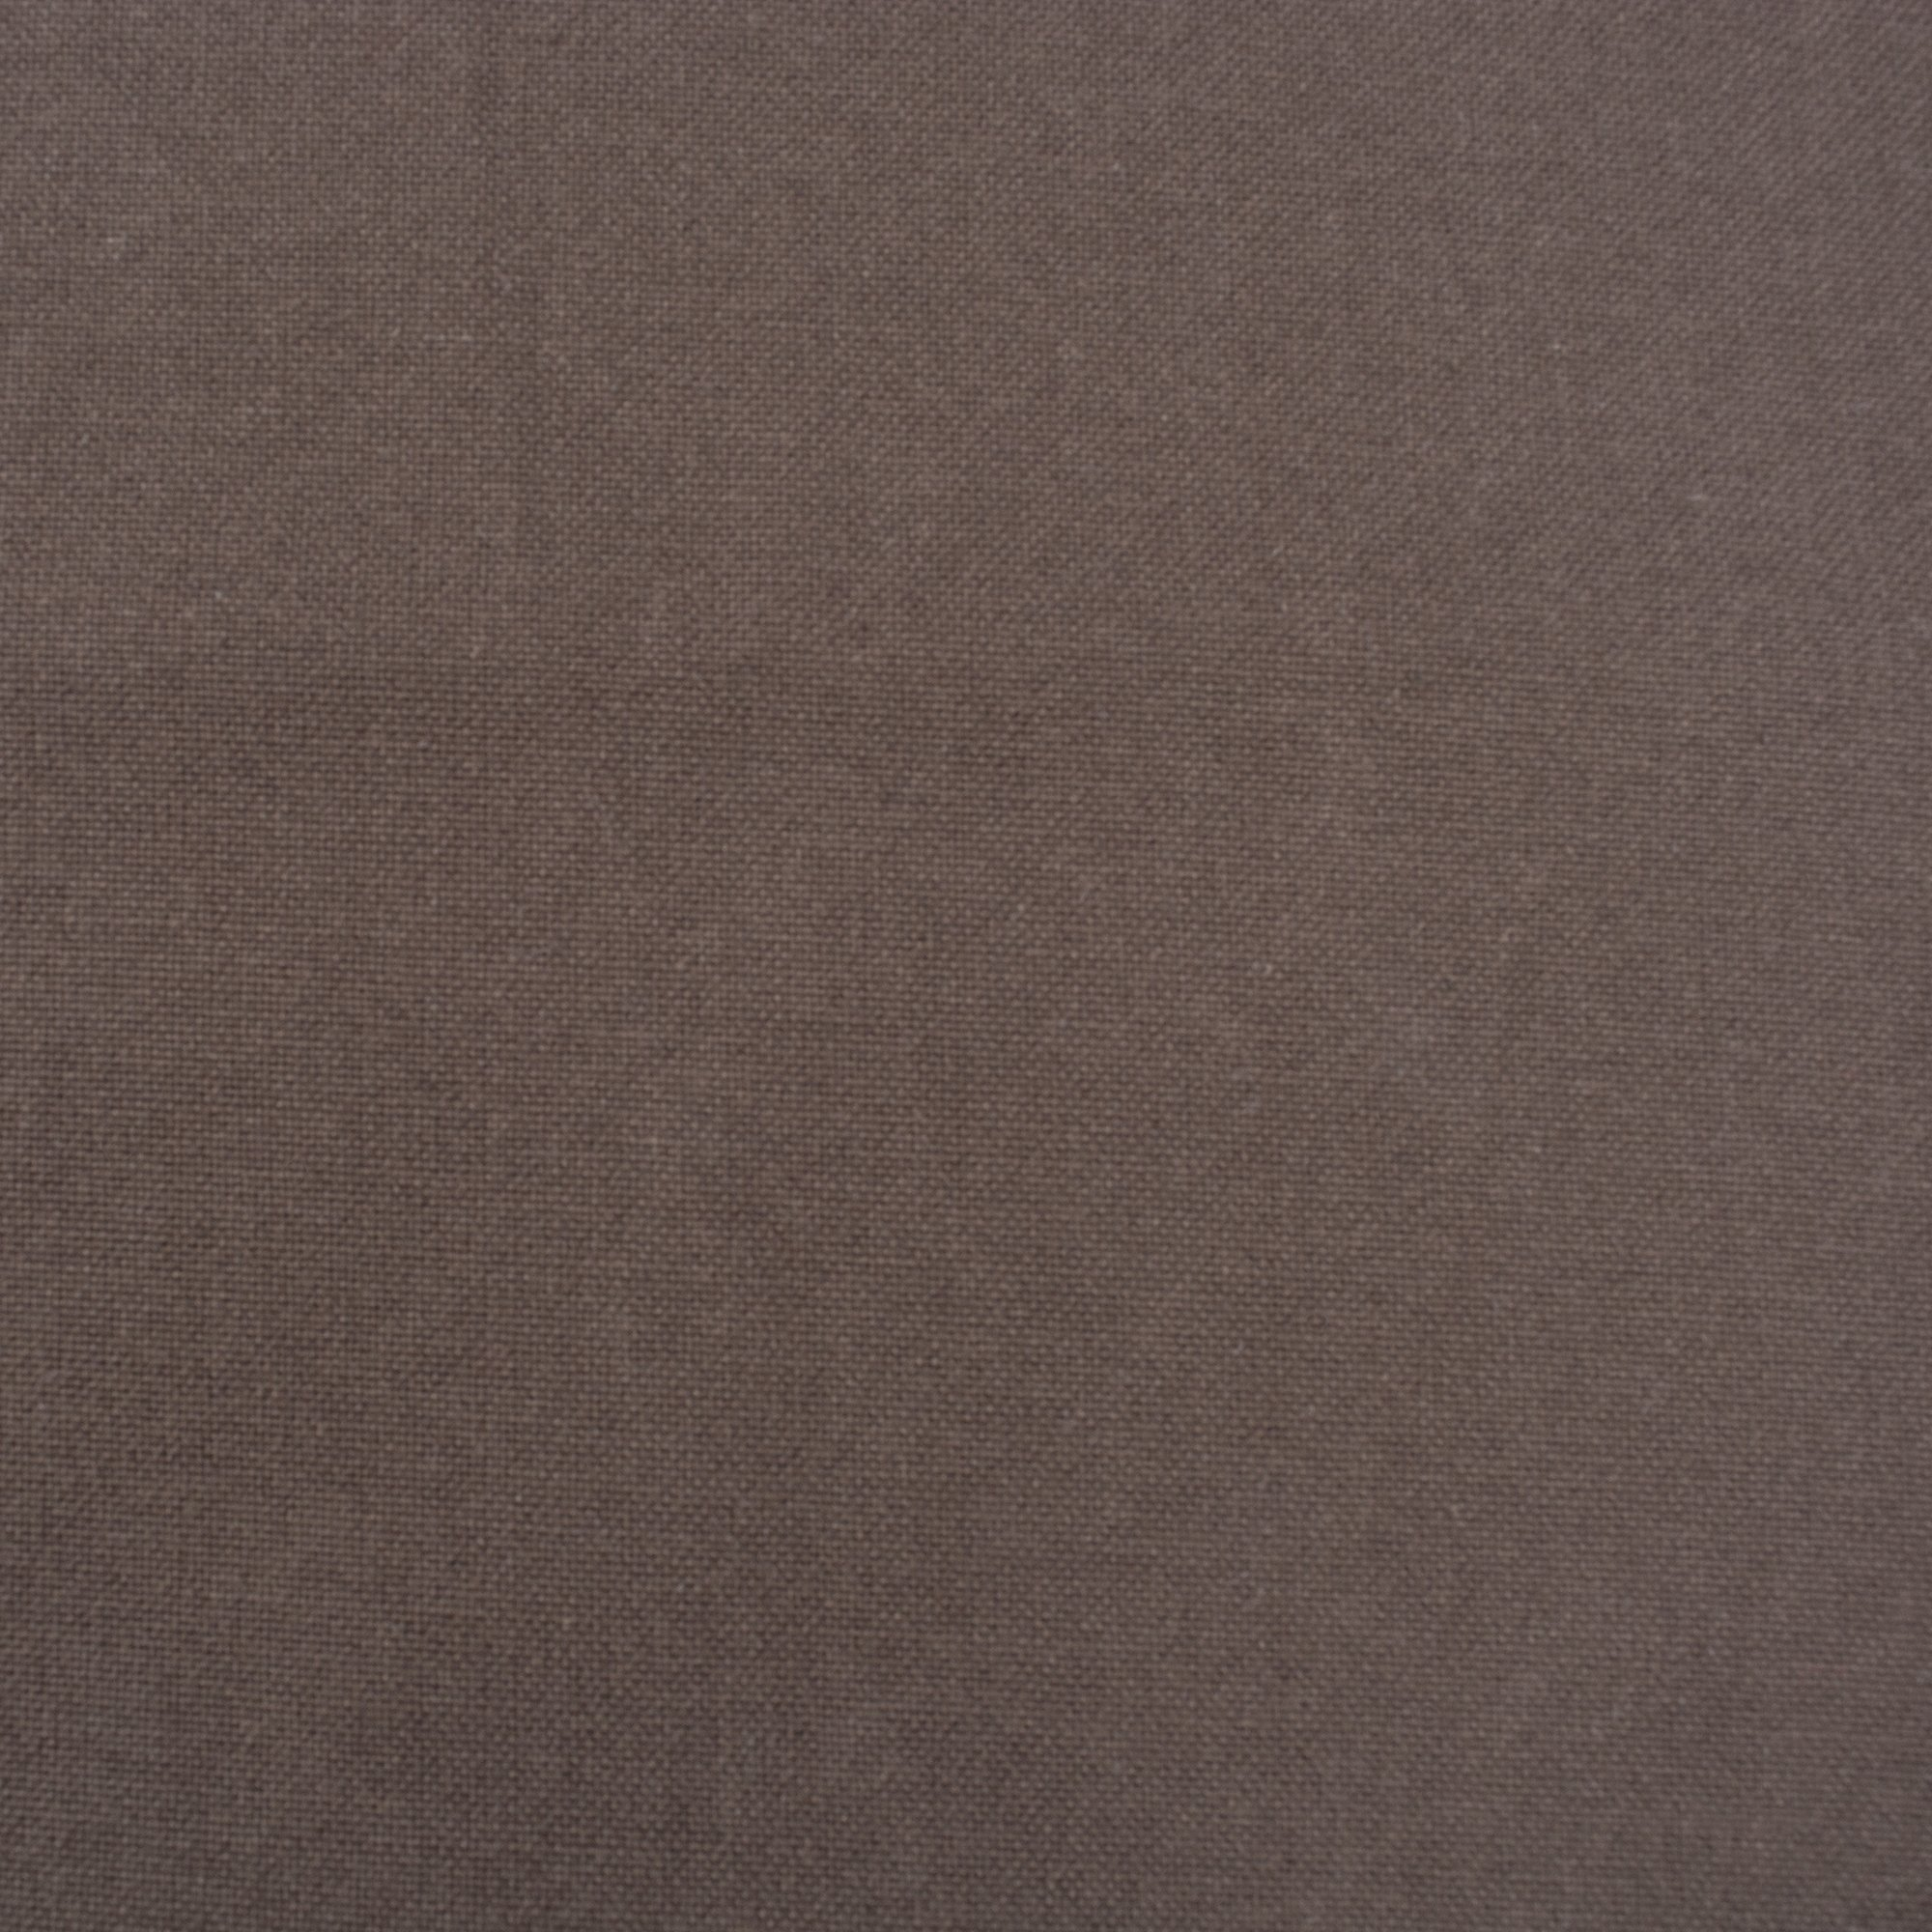 DII 100% Cotton Cloth Napkins, Oversized 20x20'' Dinner Napkins, For Basic Everyday Use, Banquets, Weddings, Events, or Family Gatherings - Set of 6, Dark Brown by DII (Image #3)